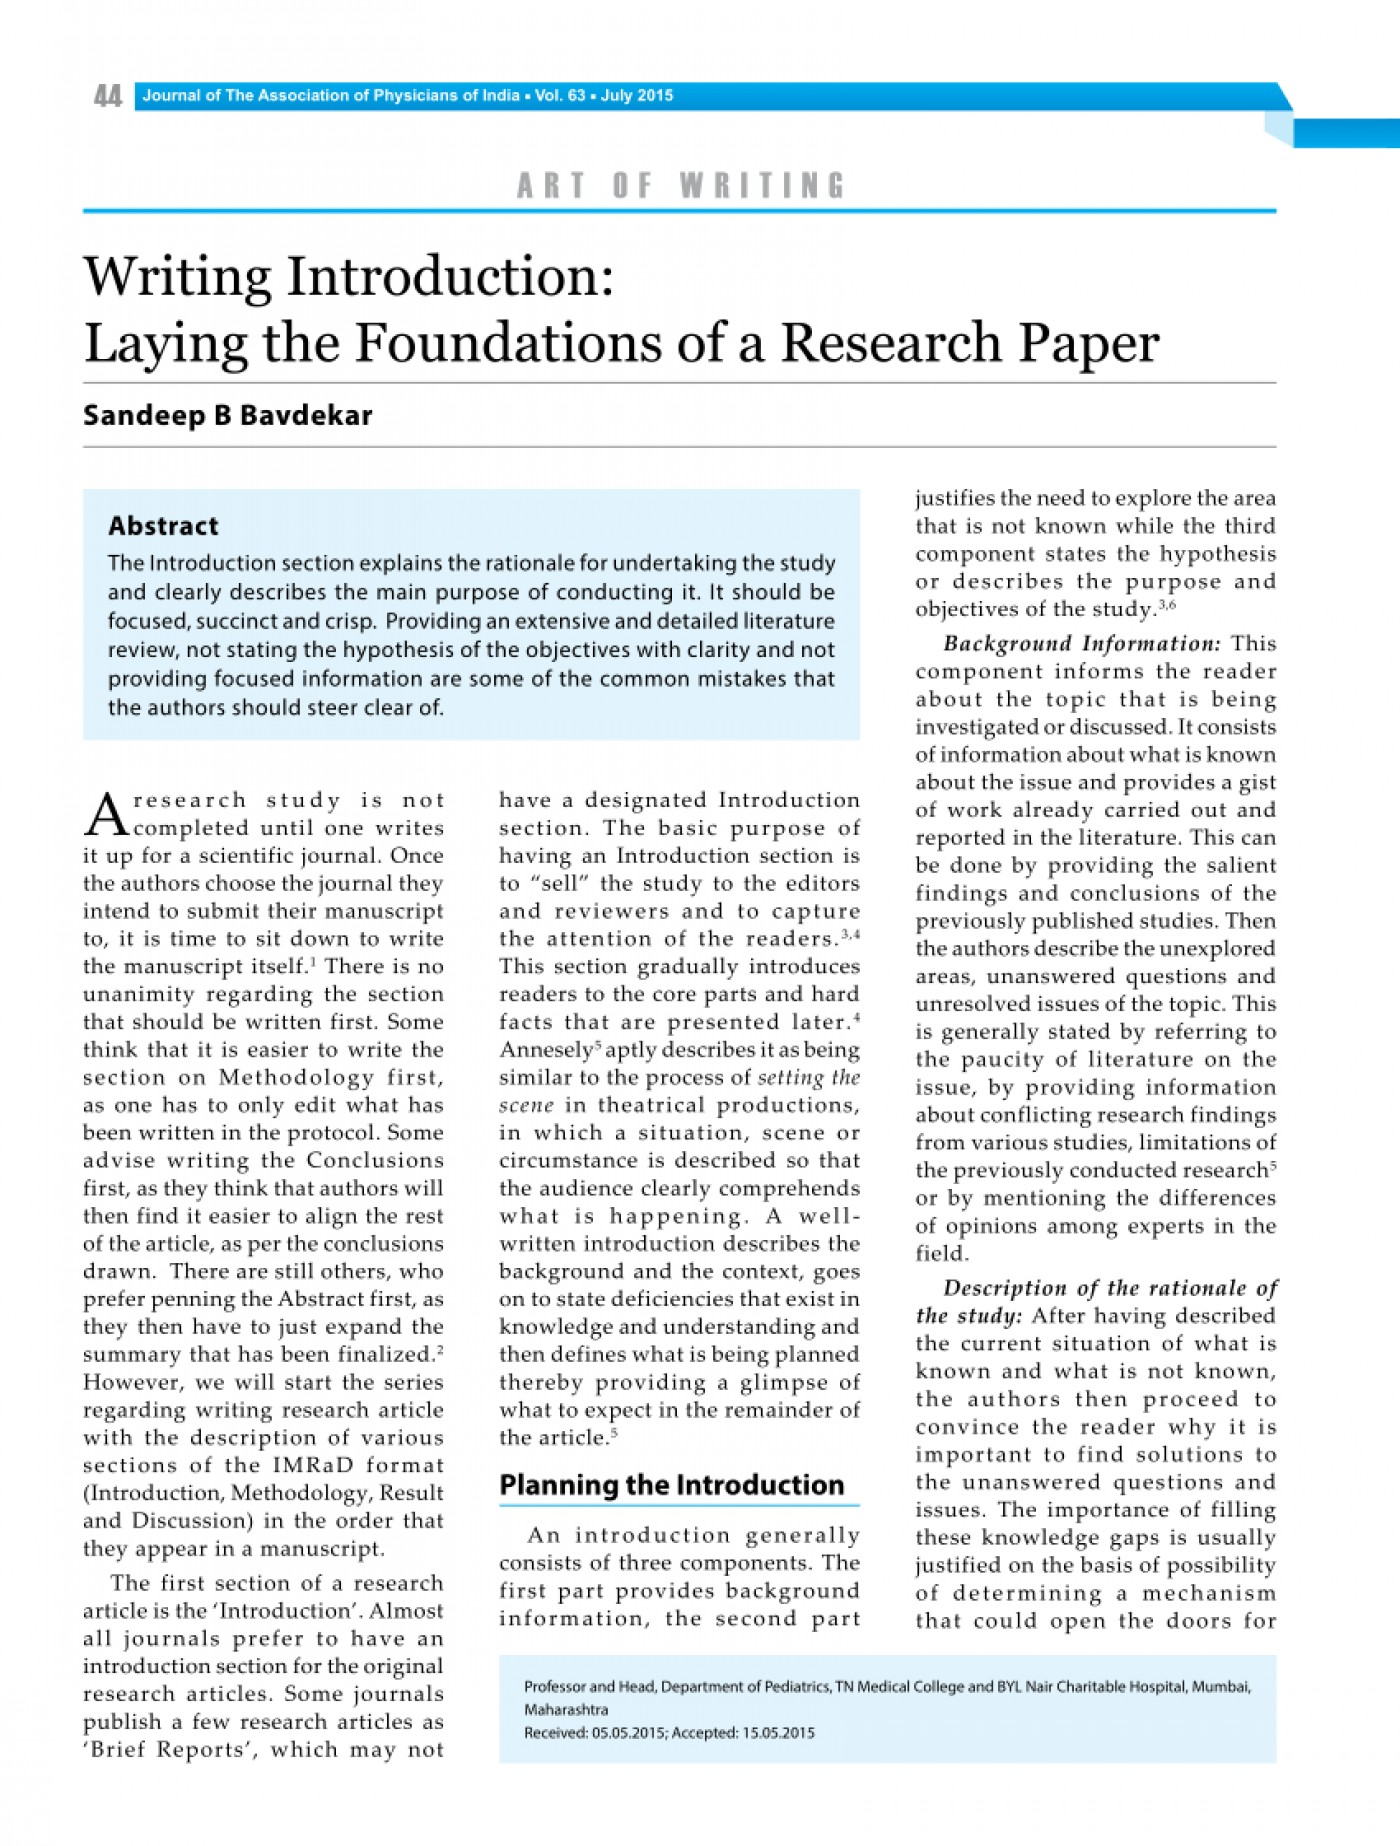 006 Example Of An Introduction For Research Paper Excellent A Apa Sample In Pdf 1400